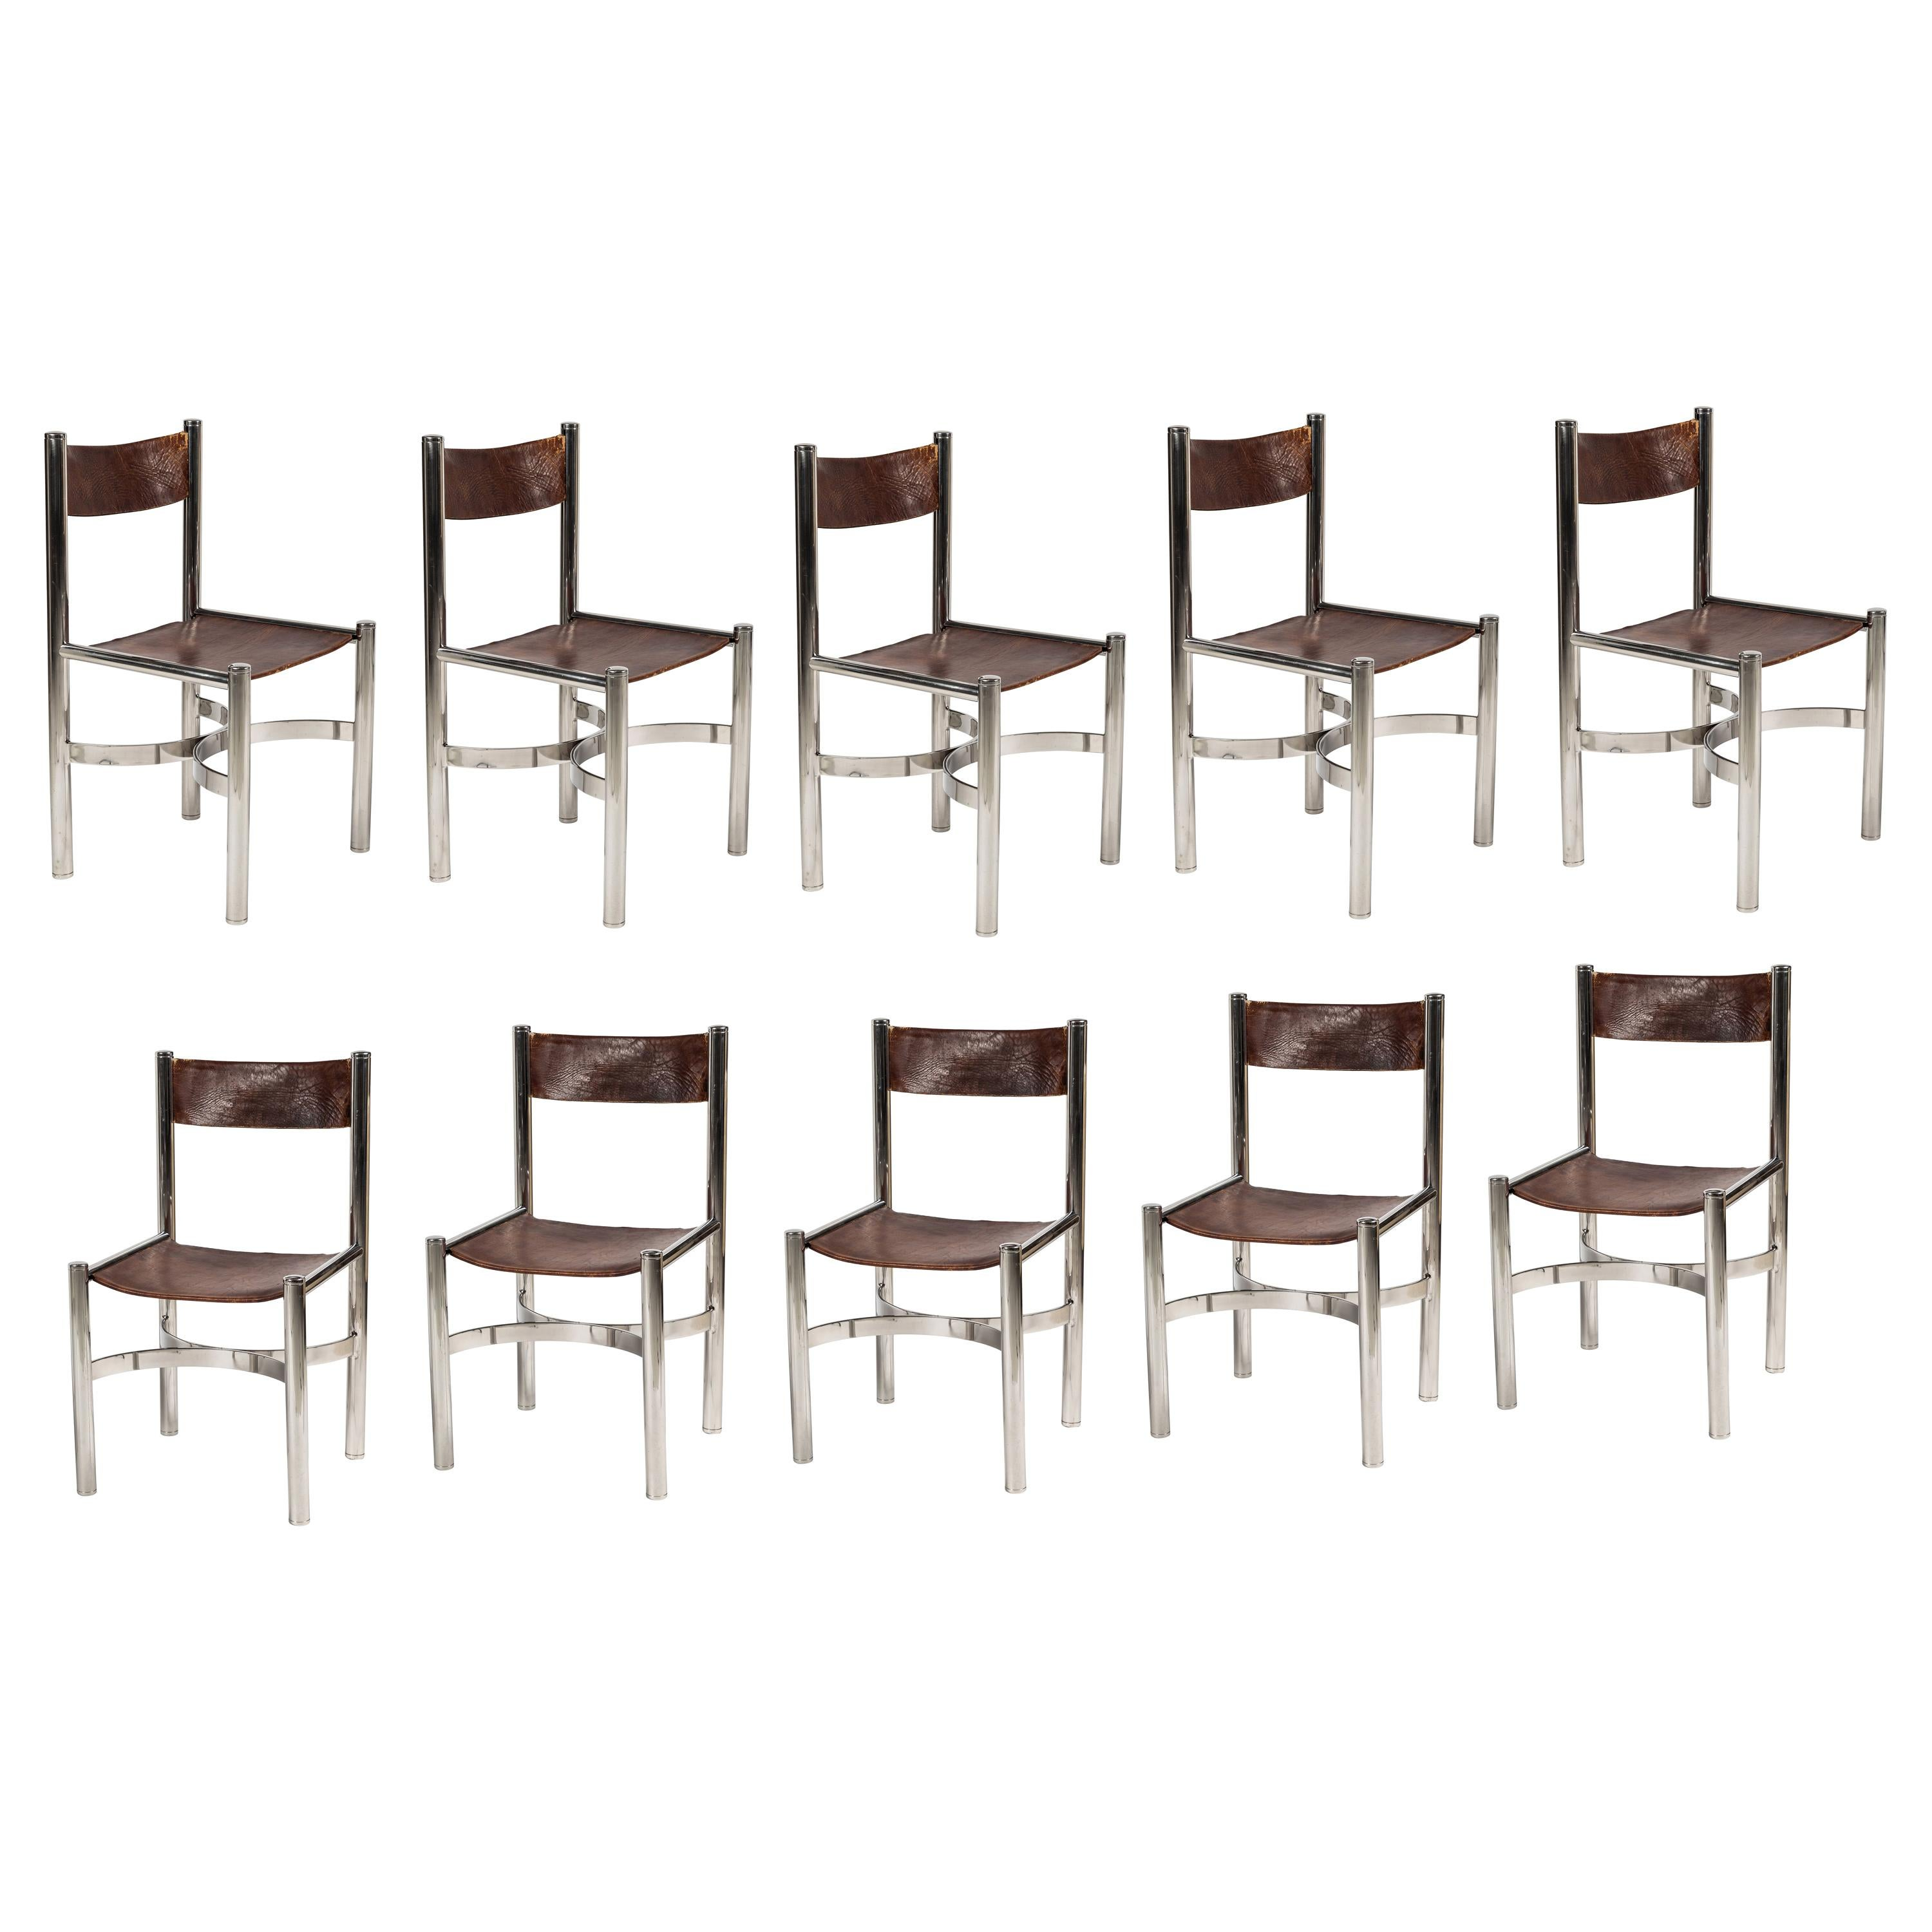 Set of 10 Chrome and Leather Dining Chairs by Dada International